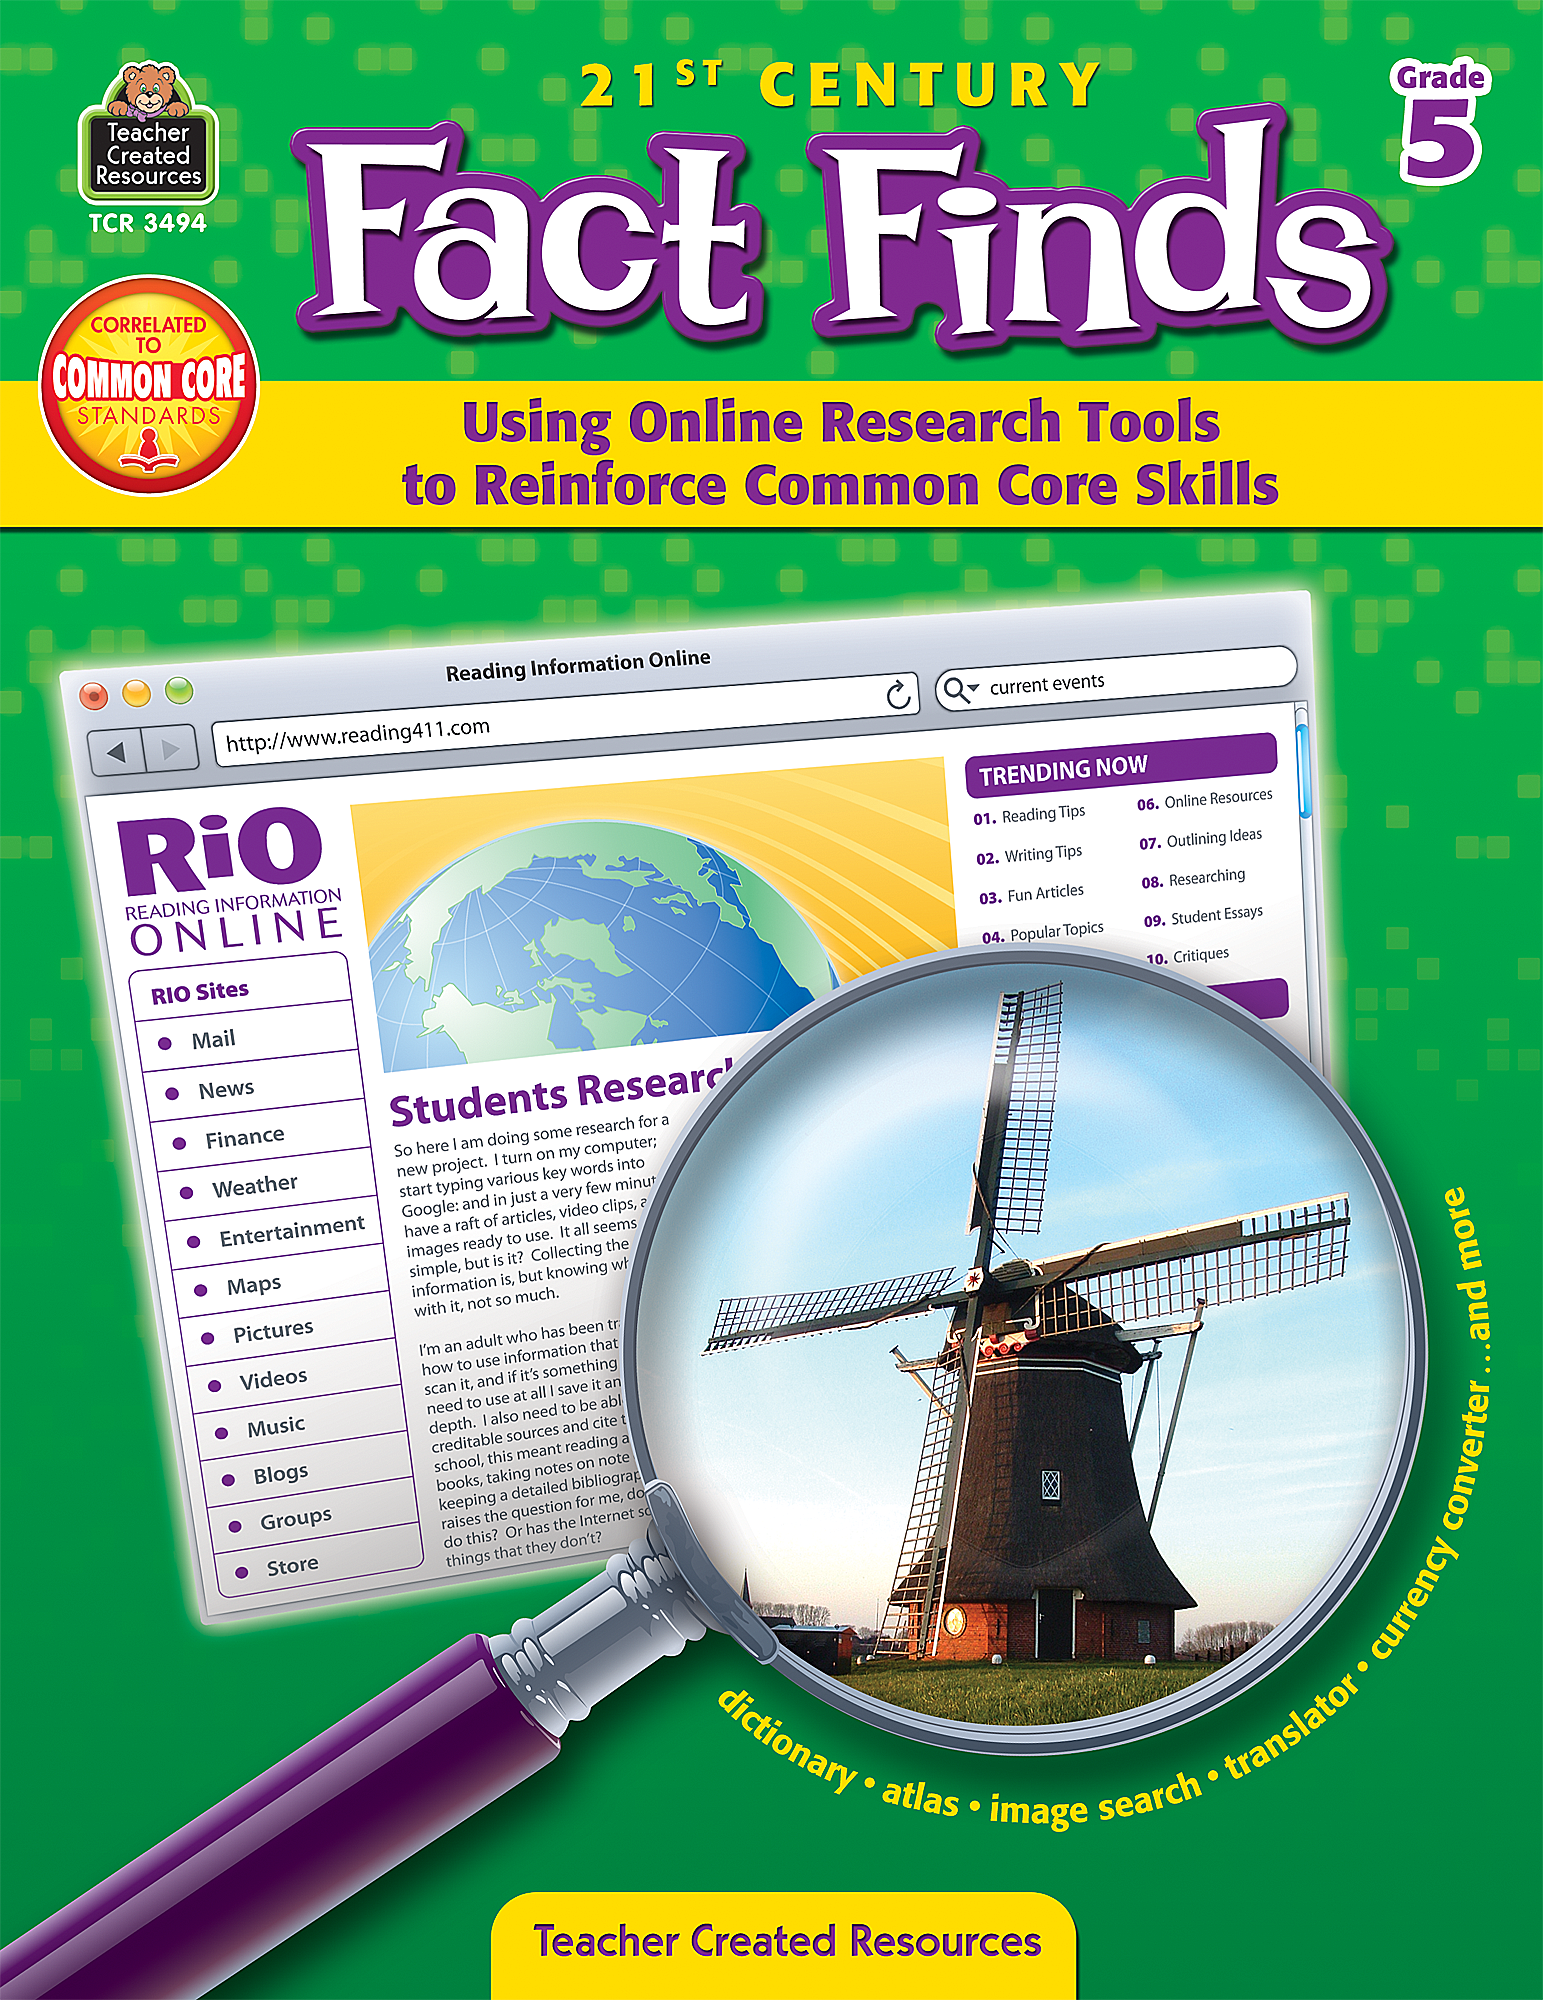 Worksheet Fact Online 21st century fact finds using online research tools to reinforce common core skills grade 5 tcr3494 products teacher